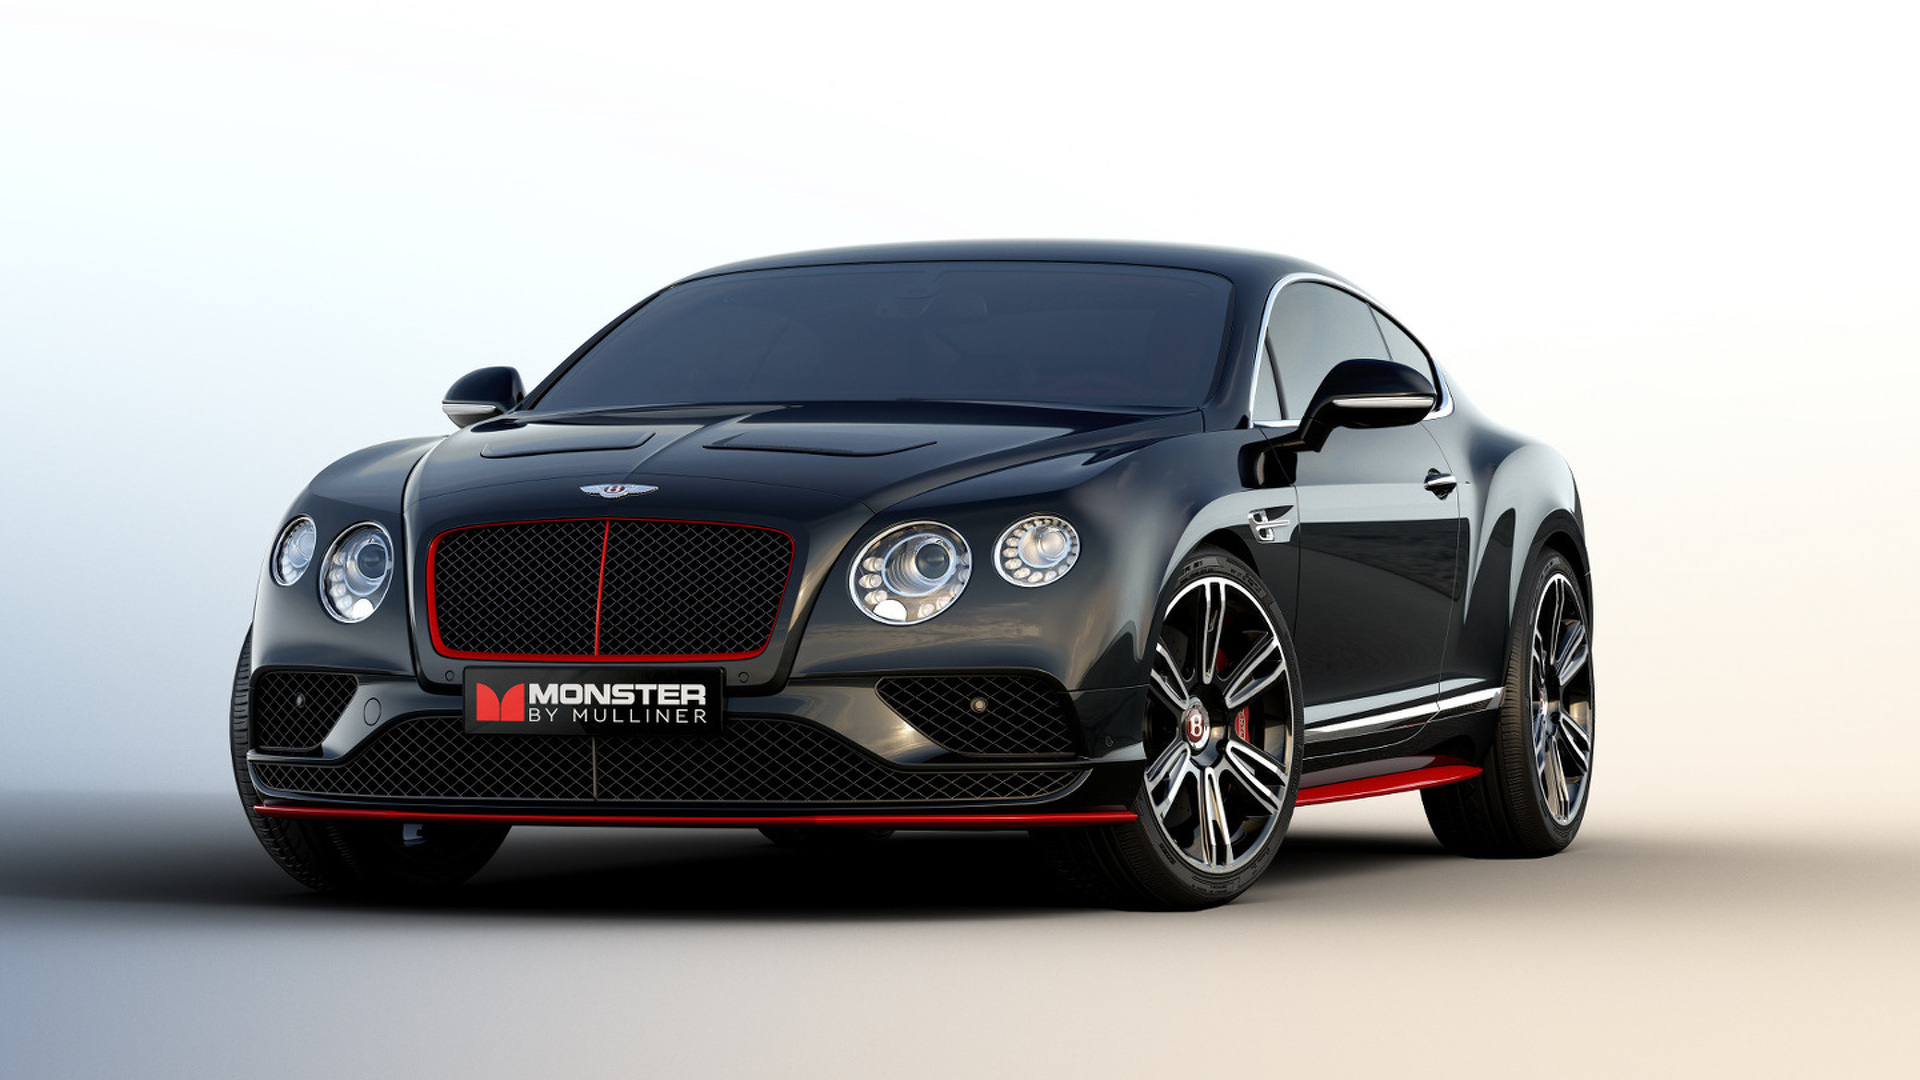 Bentley Continental GT Monster by Mulliner unveiled with a bespoke